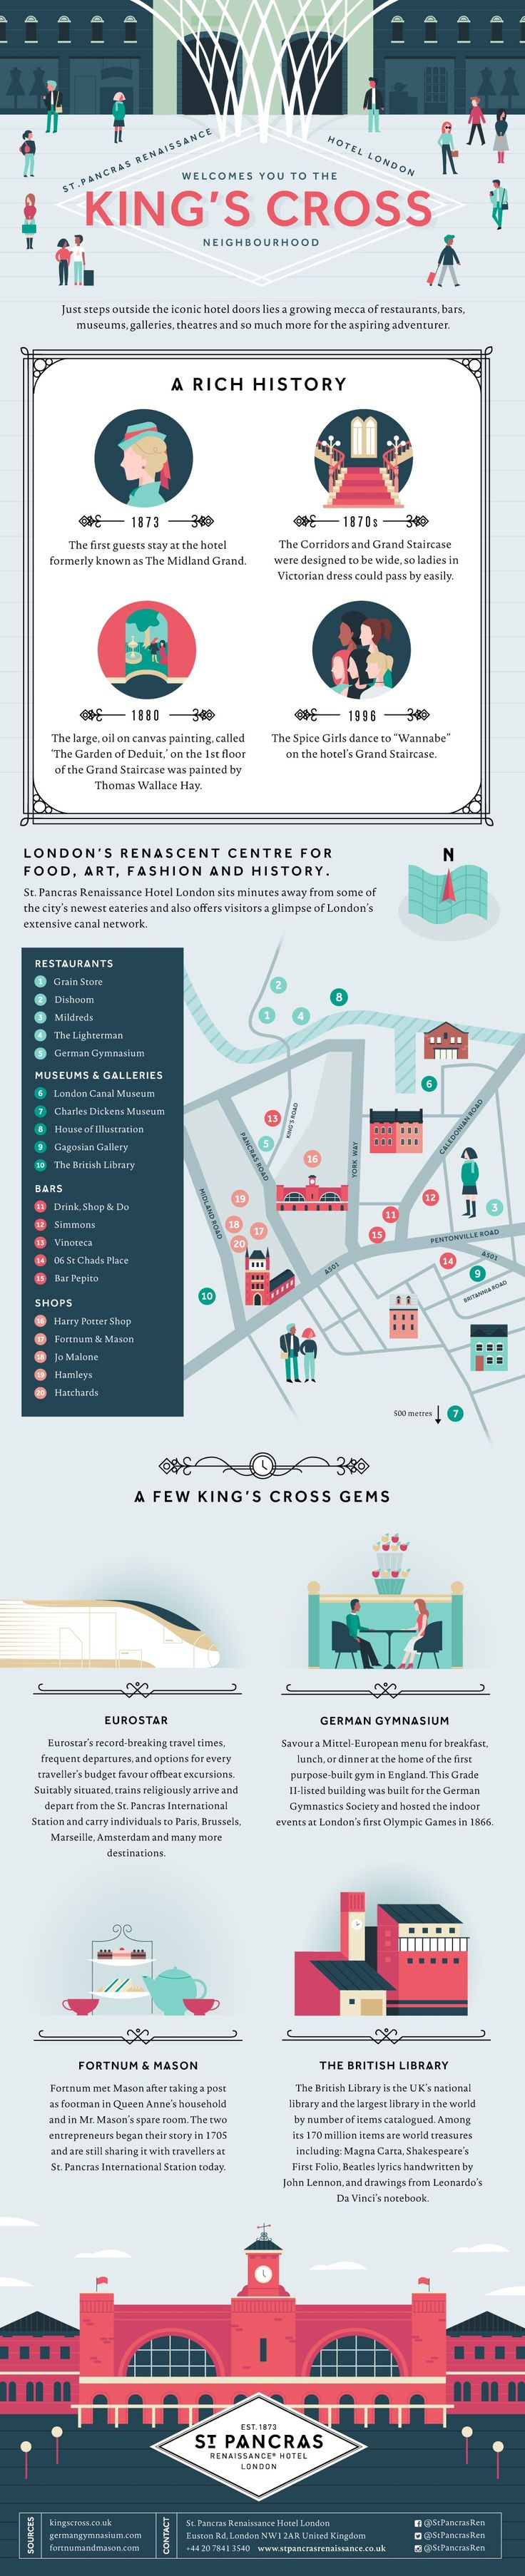 What You Need to Know About London's King's Cross Neighborhood  #RePin by AT Social Media Marketing - Pinterest Marketing Specialists ATSocialMedia.co.uk